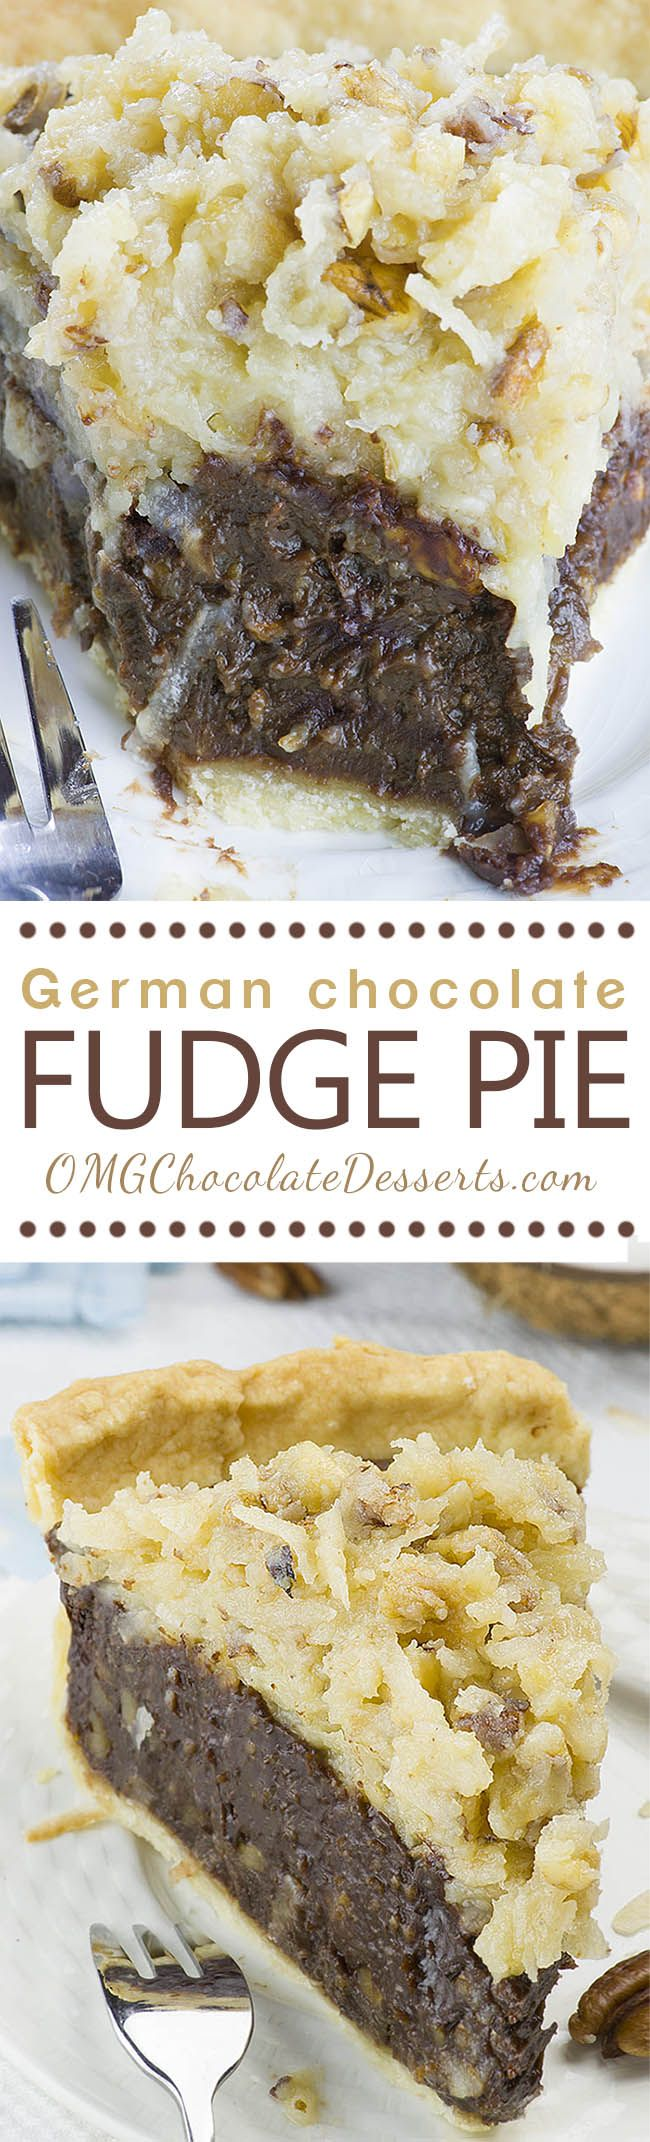 German Chocolate Pie is melt-in-your-mouth dessert. If you need simple and easy recipe for Christmas dessert to make at the last minute, try this amazing Chocolate Pie!